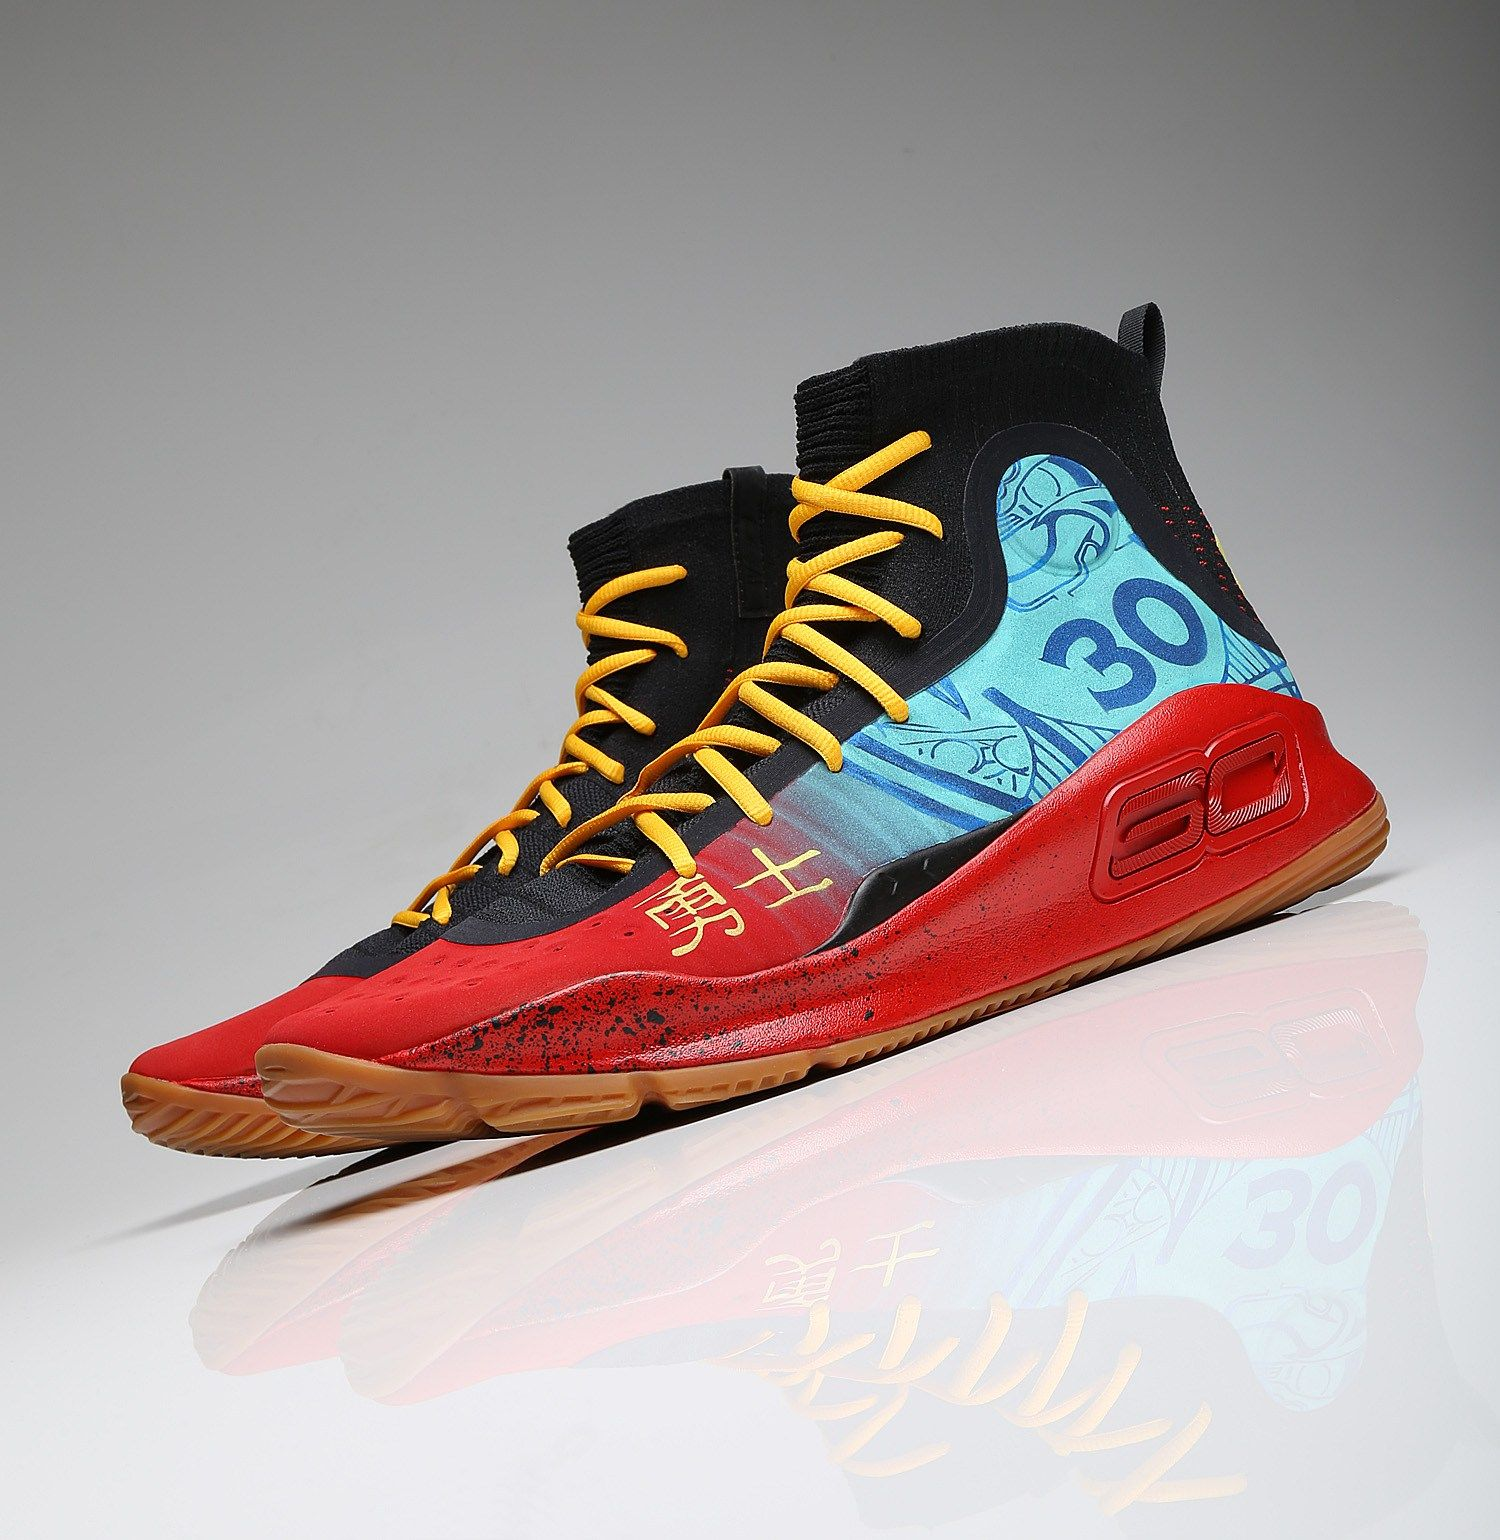 Stephen Curry's Exact 'Chinese New Year' Under Armour